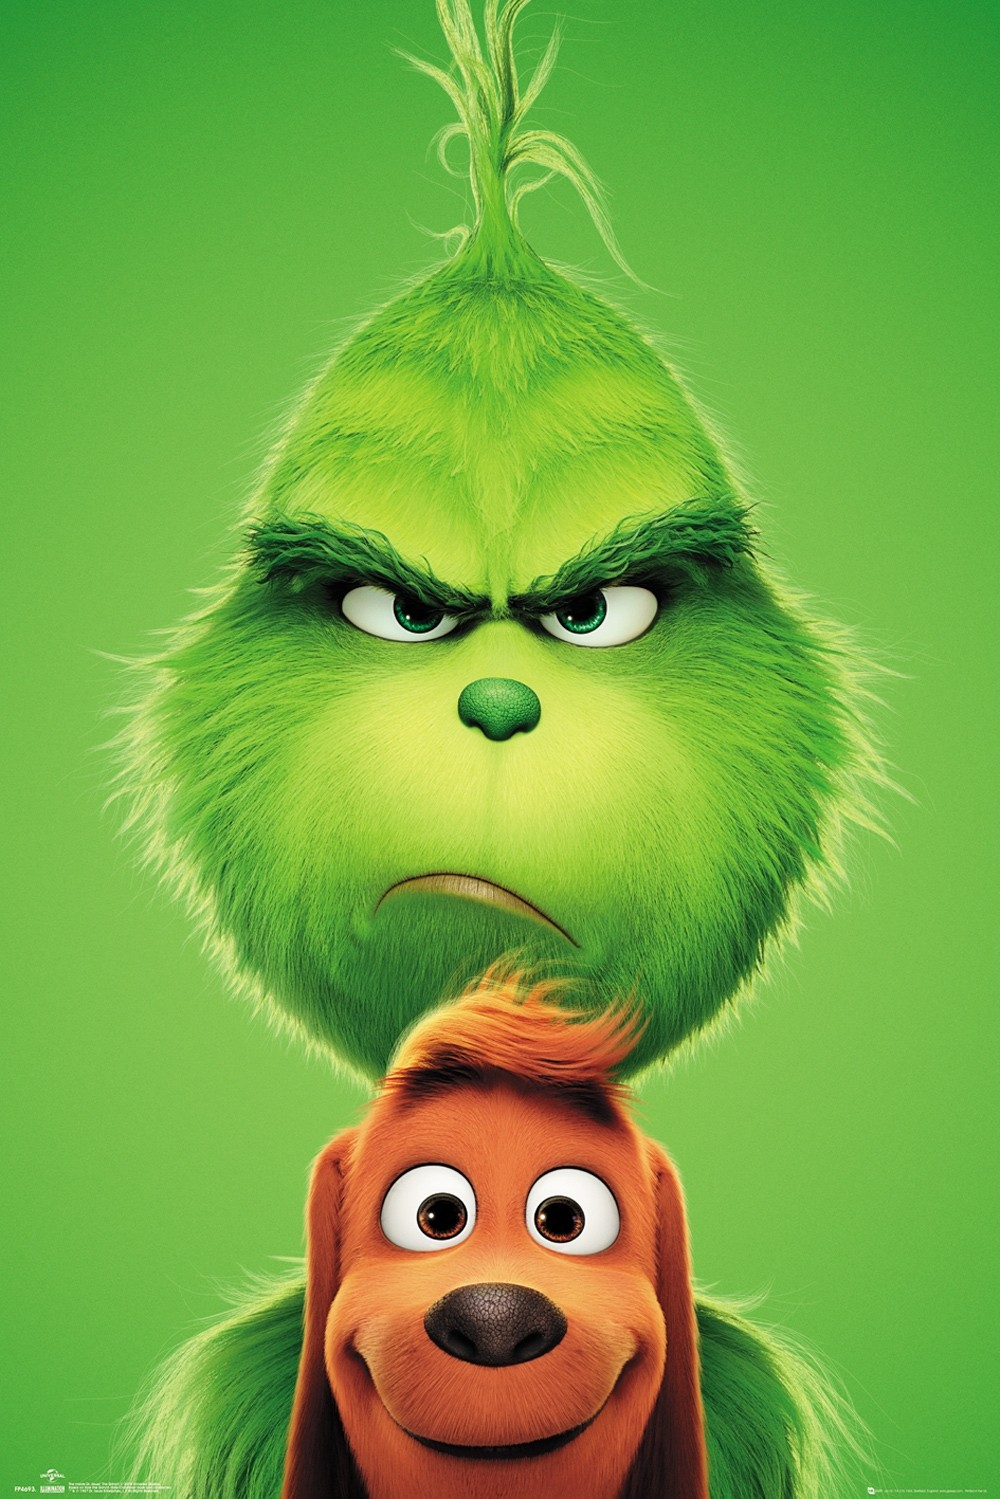 The Grinch Grinch And Max Maxi Poster Imagenes Del Grinch Fondo De Pantalla Animado Grinch